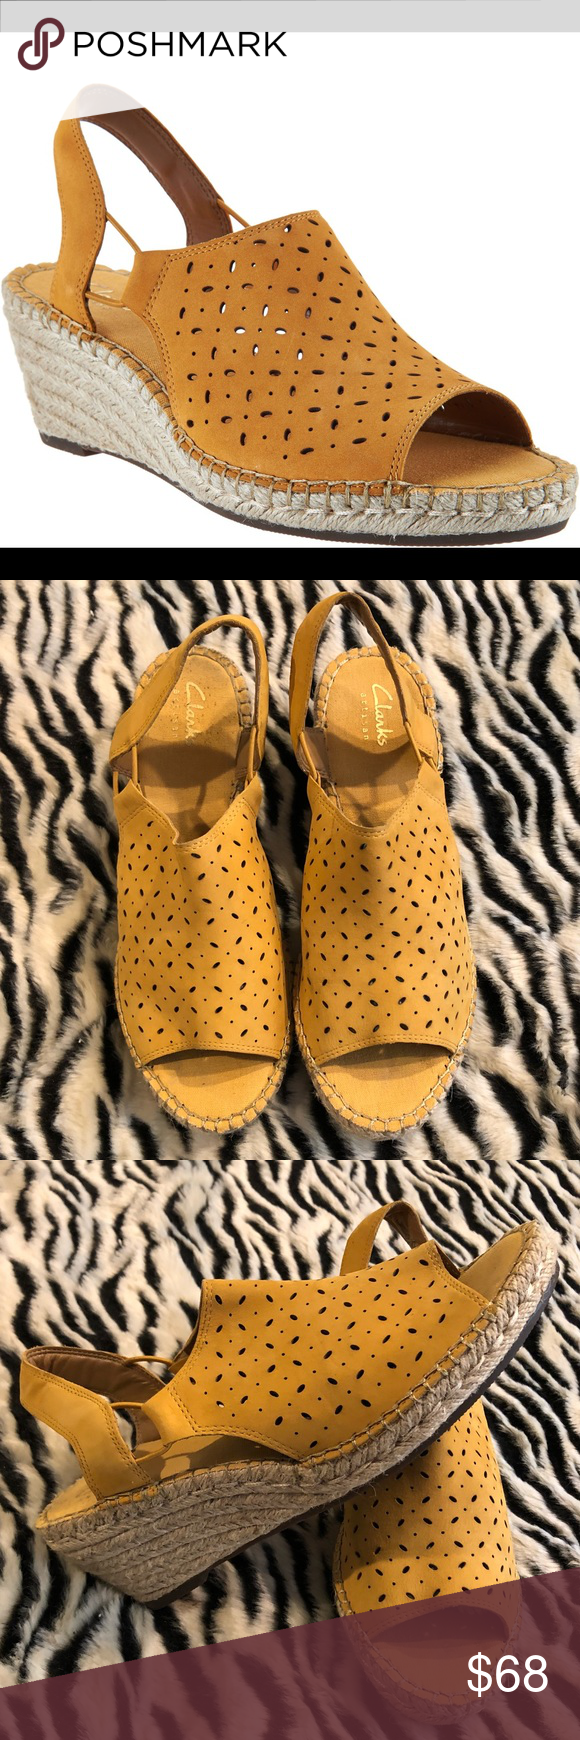 14f15e2a4f053 Clarks Leather Espadrille Wedges Petrina Gail Clarks Artisan Leather Espadrille  Wedge Sandals - Petrina Gail.